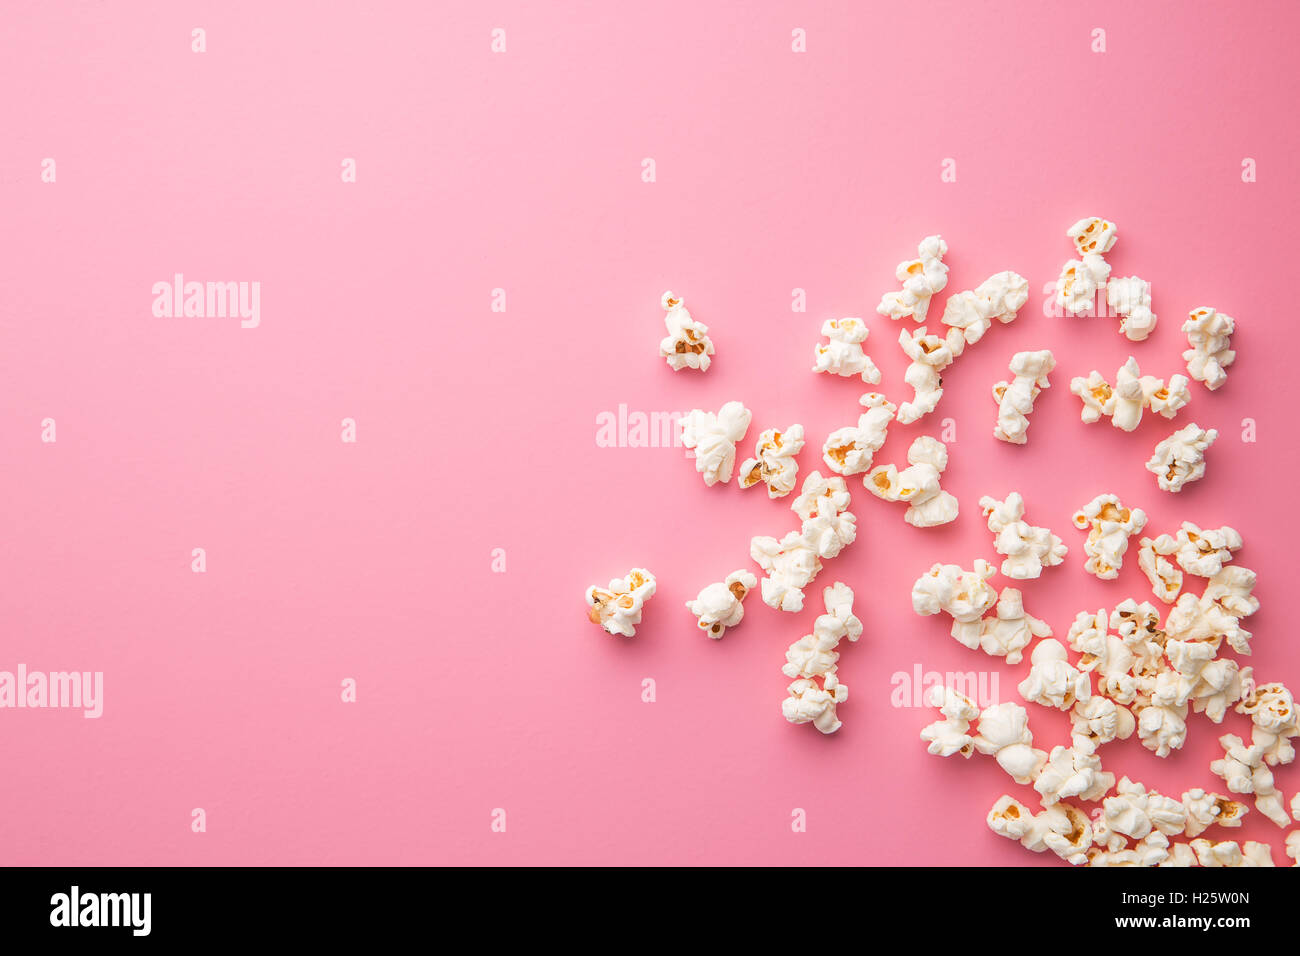 The popcorn on pink background. Stock Photo